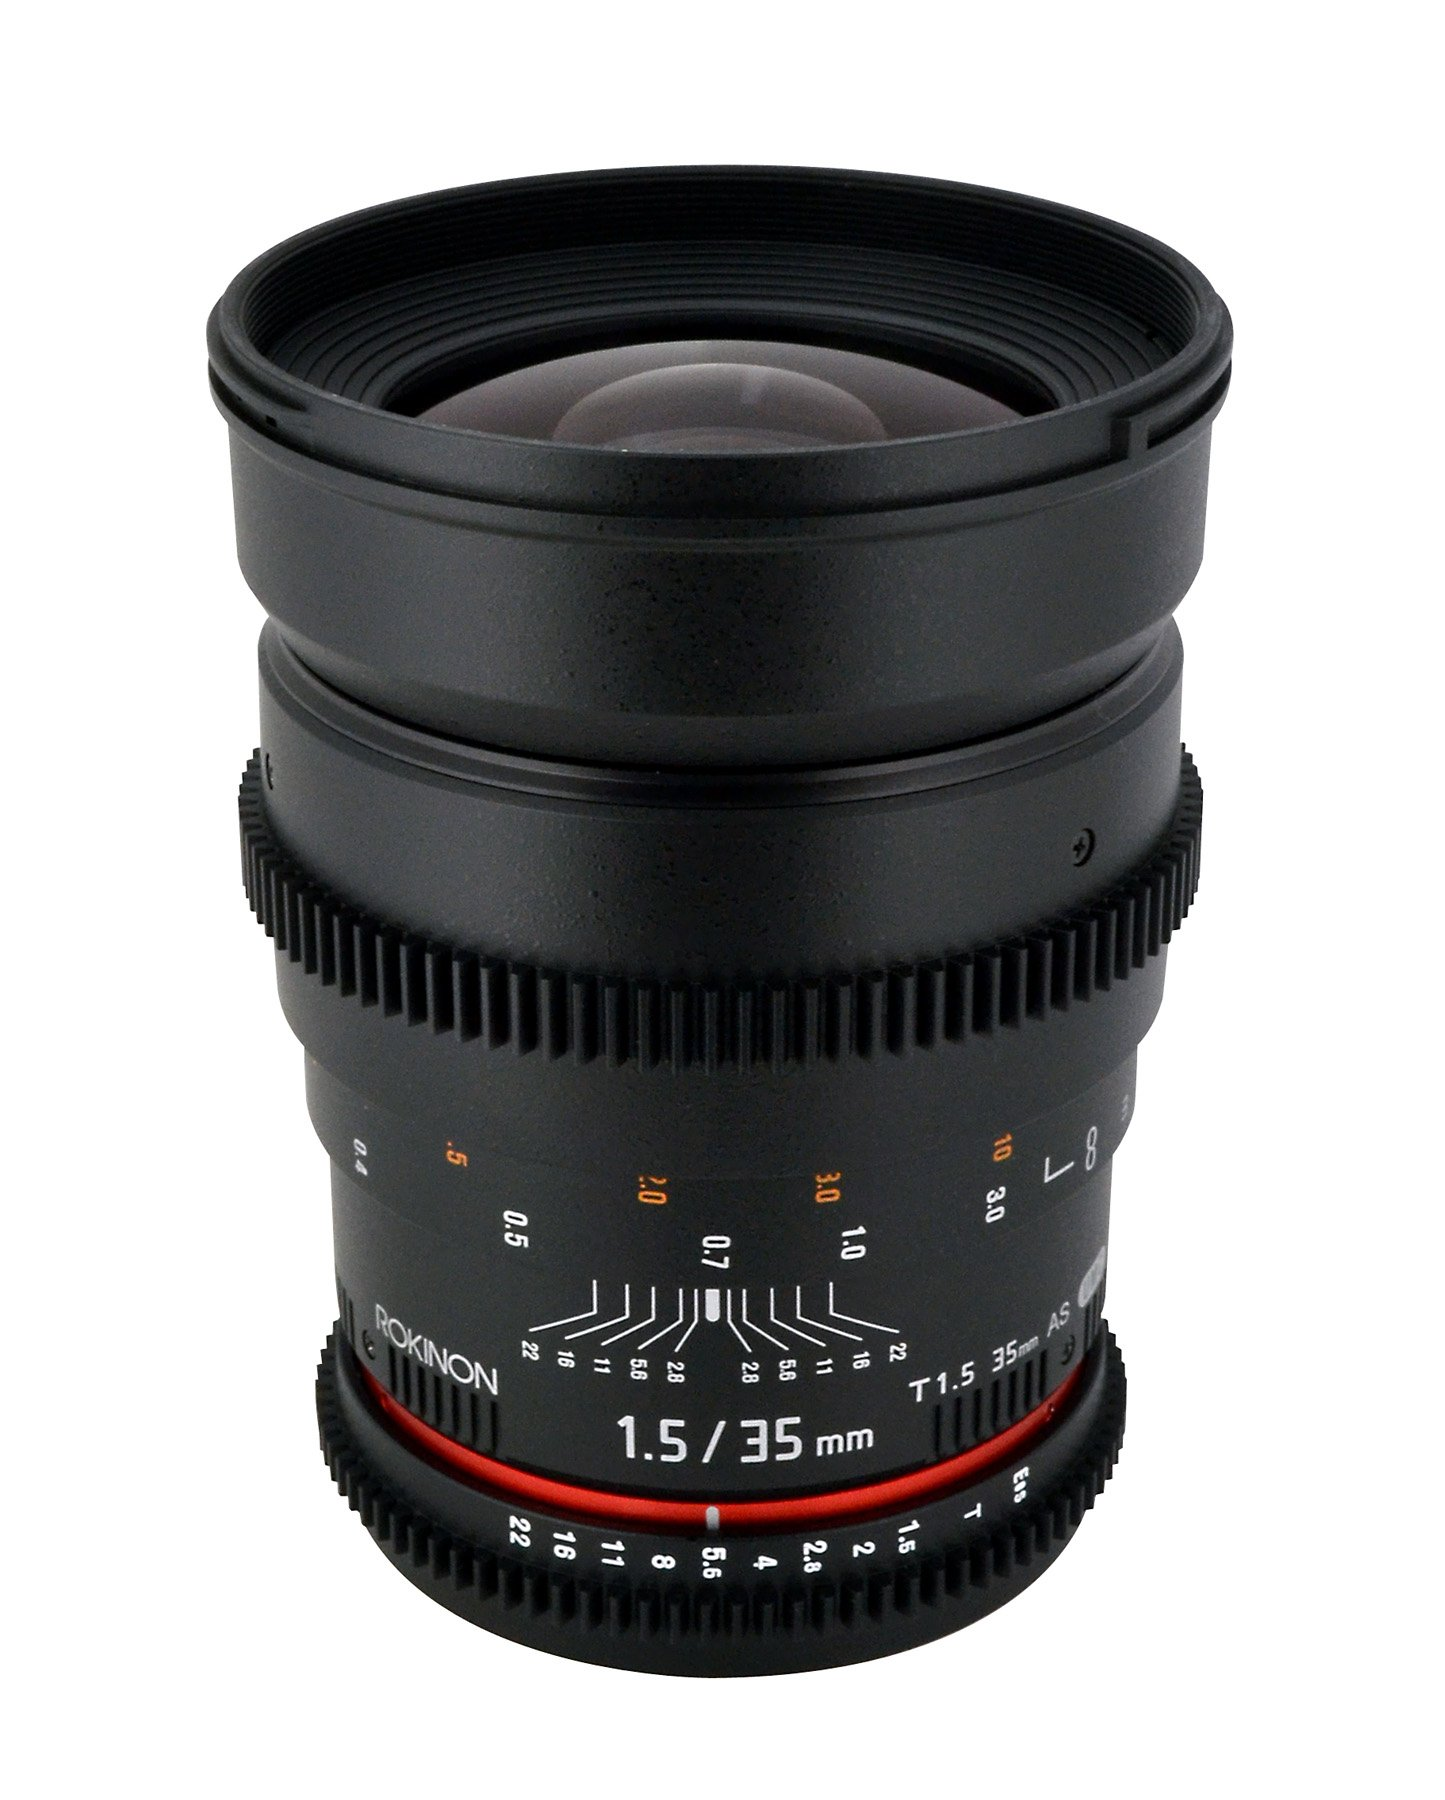 Rokinon Cine CV35-C 35mm T1.5 Aspherical Wide Angle Cine Lens with De-Clicked Aperture for Canon EOS DSLR 35-35mm, Fixed-Non-Zoom Lens by Rokinon (Image #4)